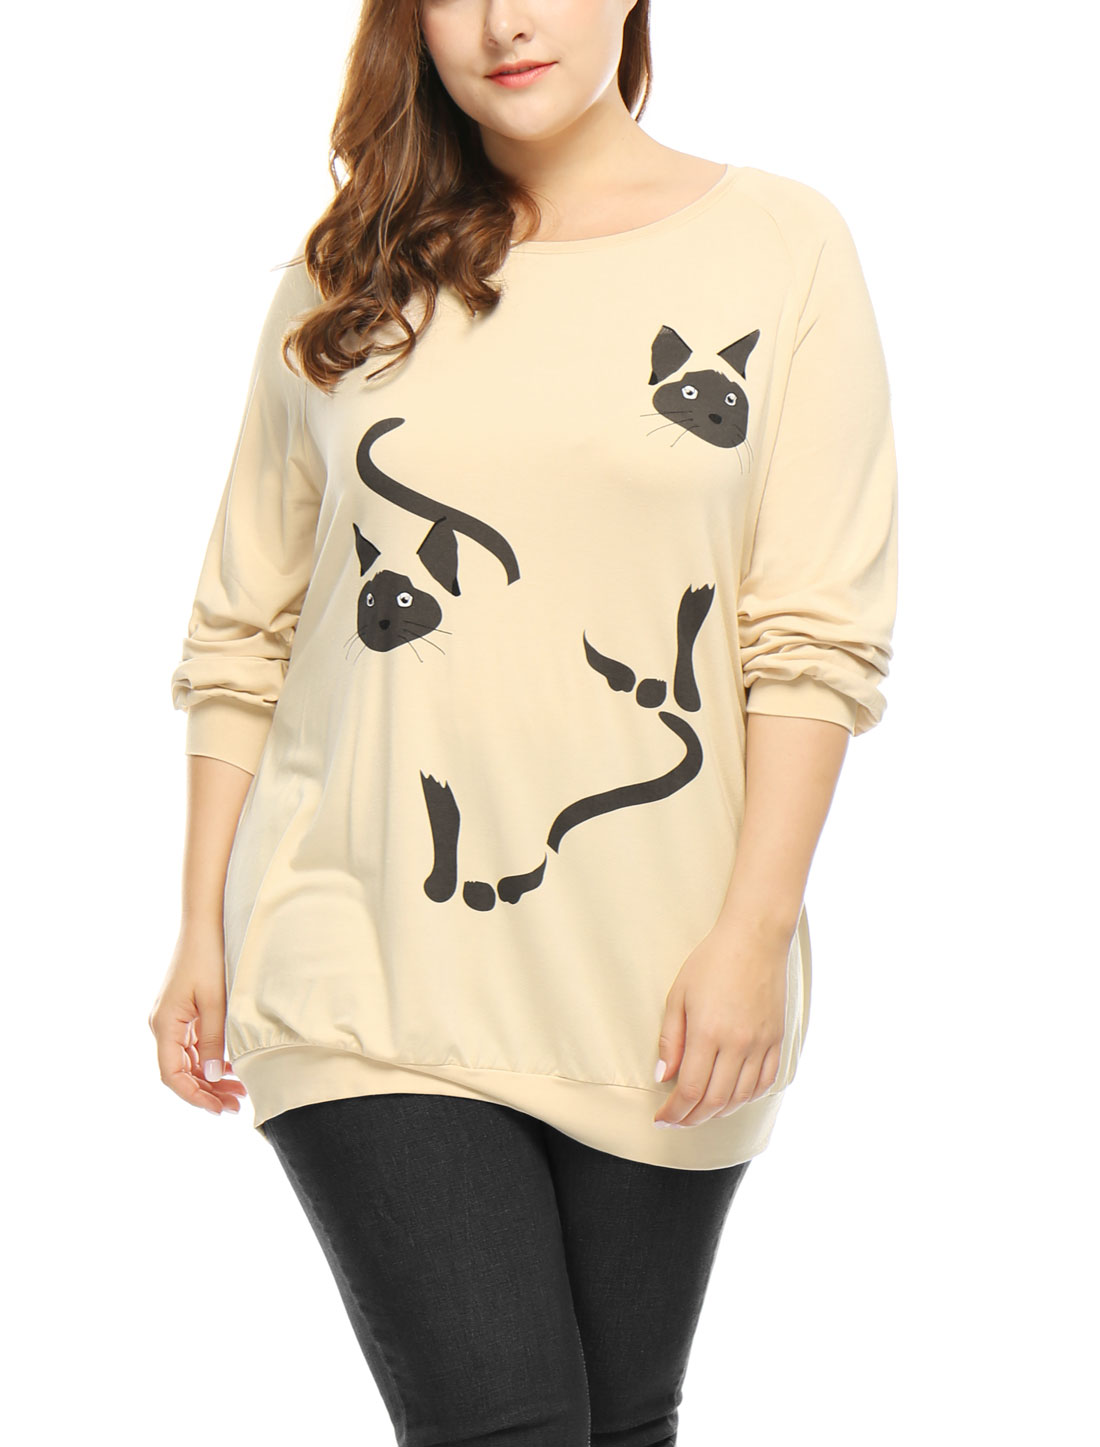 Women Plus Size Cats Print Raglan Sleeves Slouchy Tunic Top Beige 3X